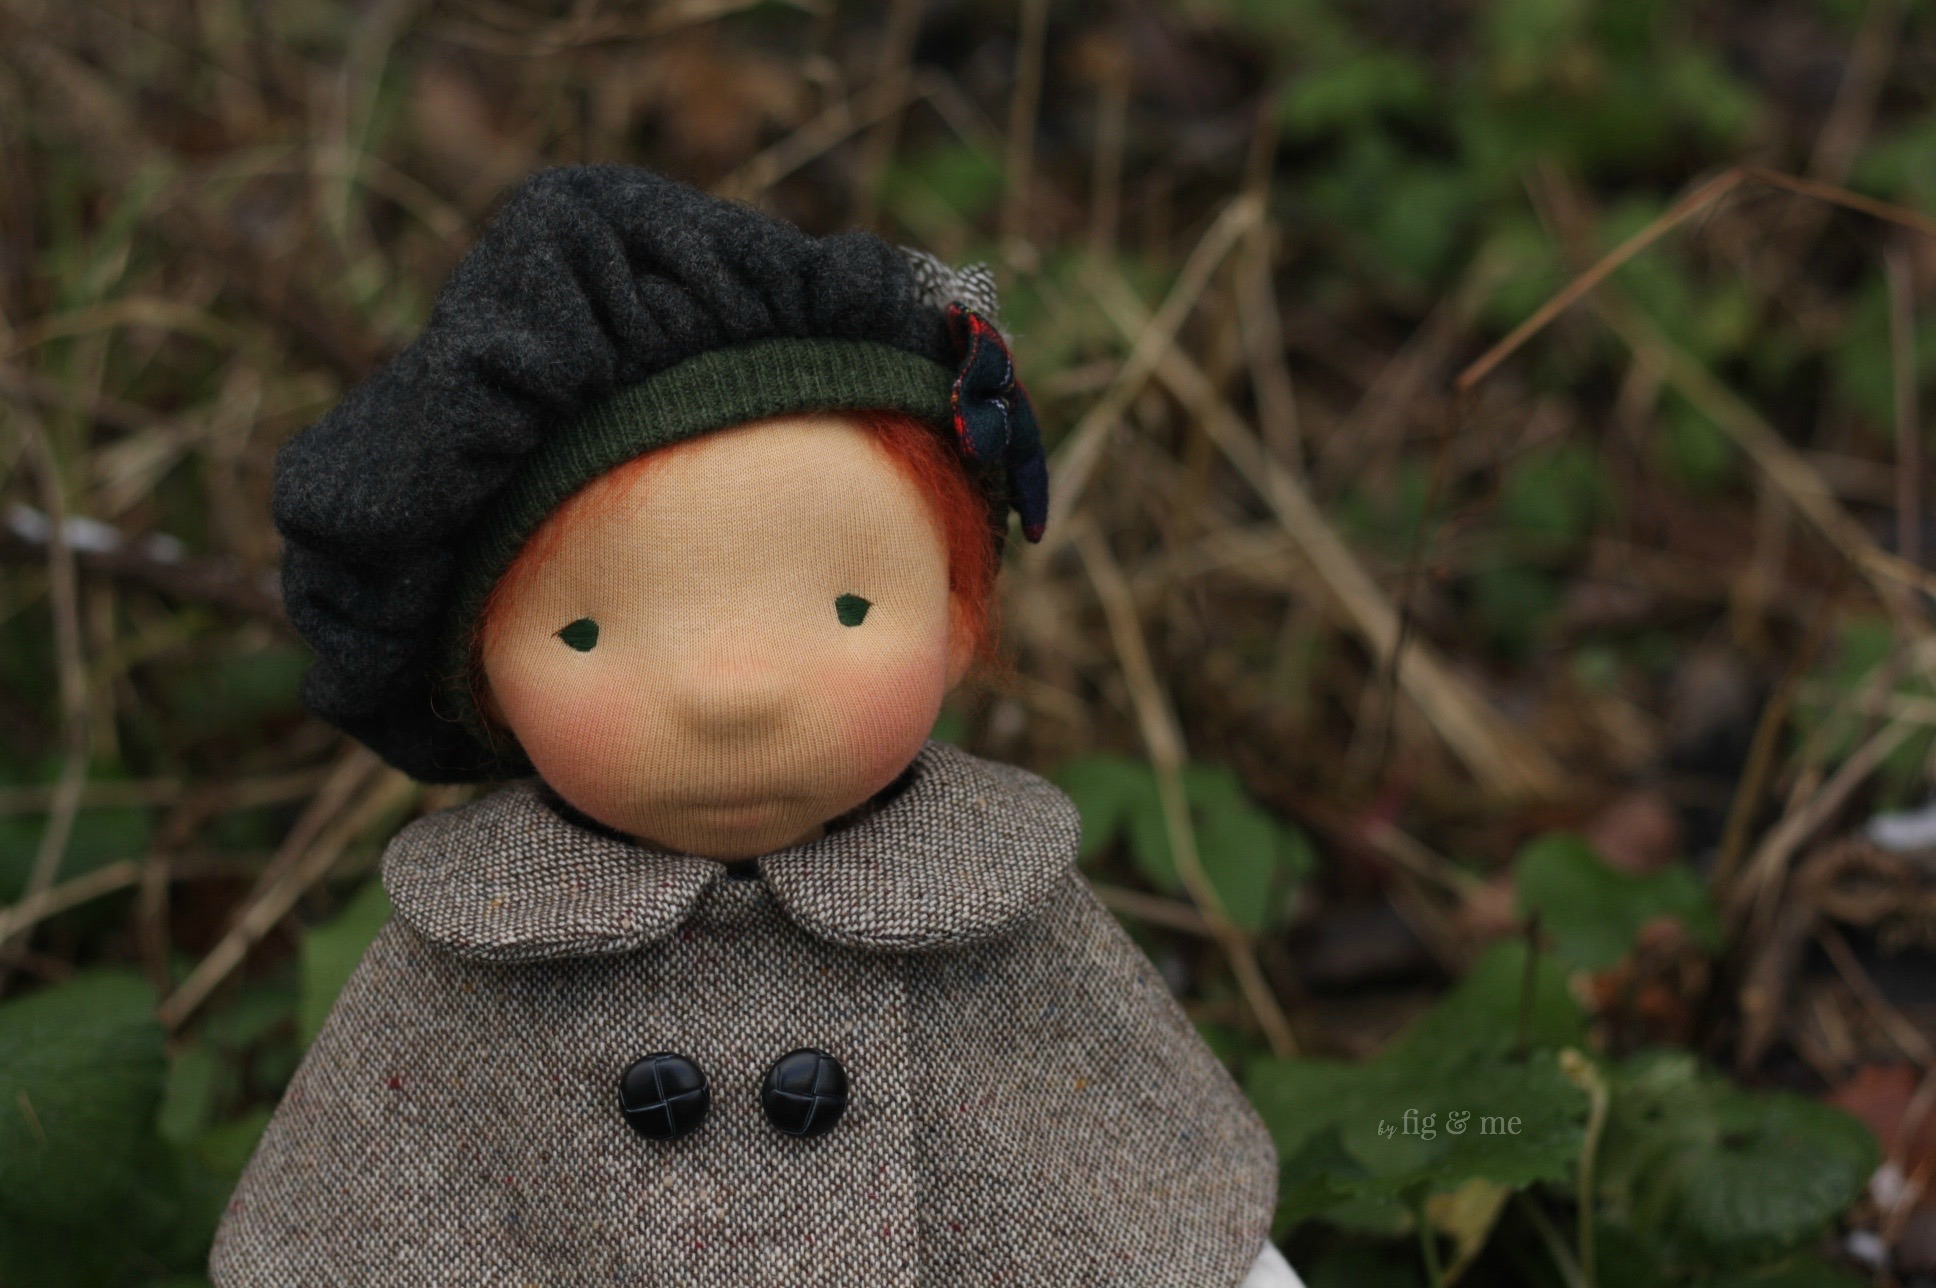 Little Kilda, a natural fiber art doll made with love by Fig and me (inspired by Scotland).